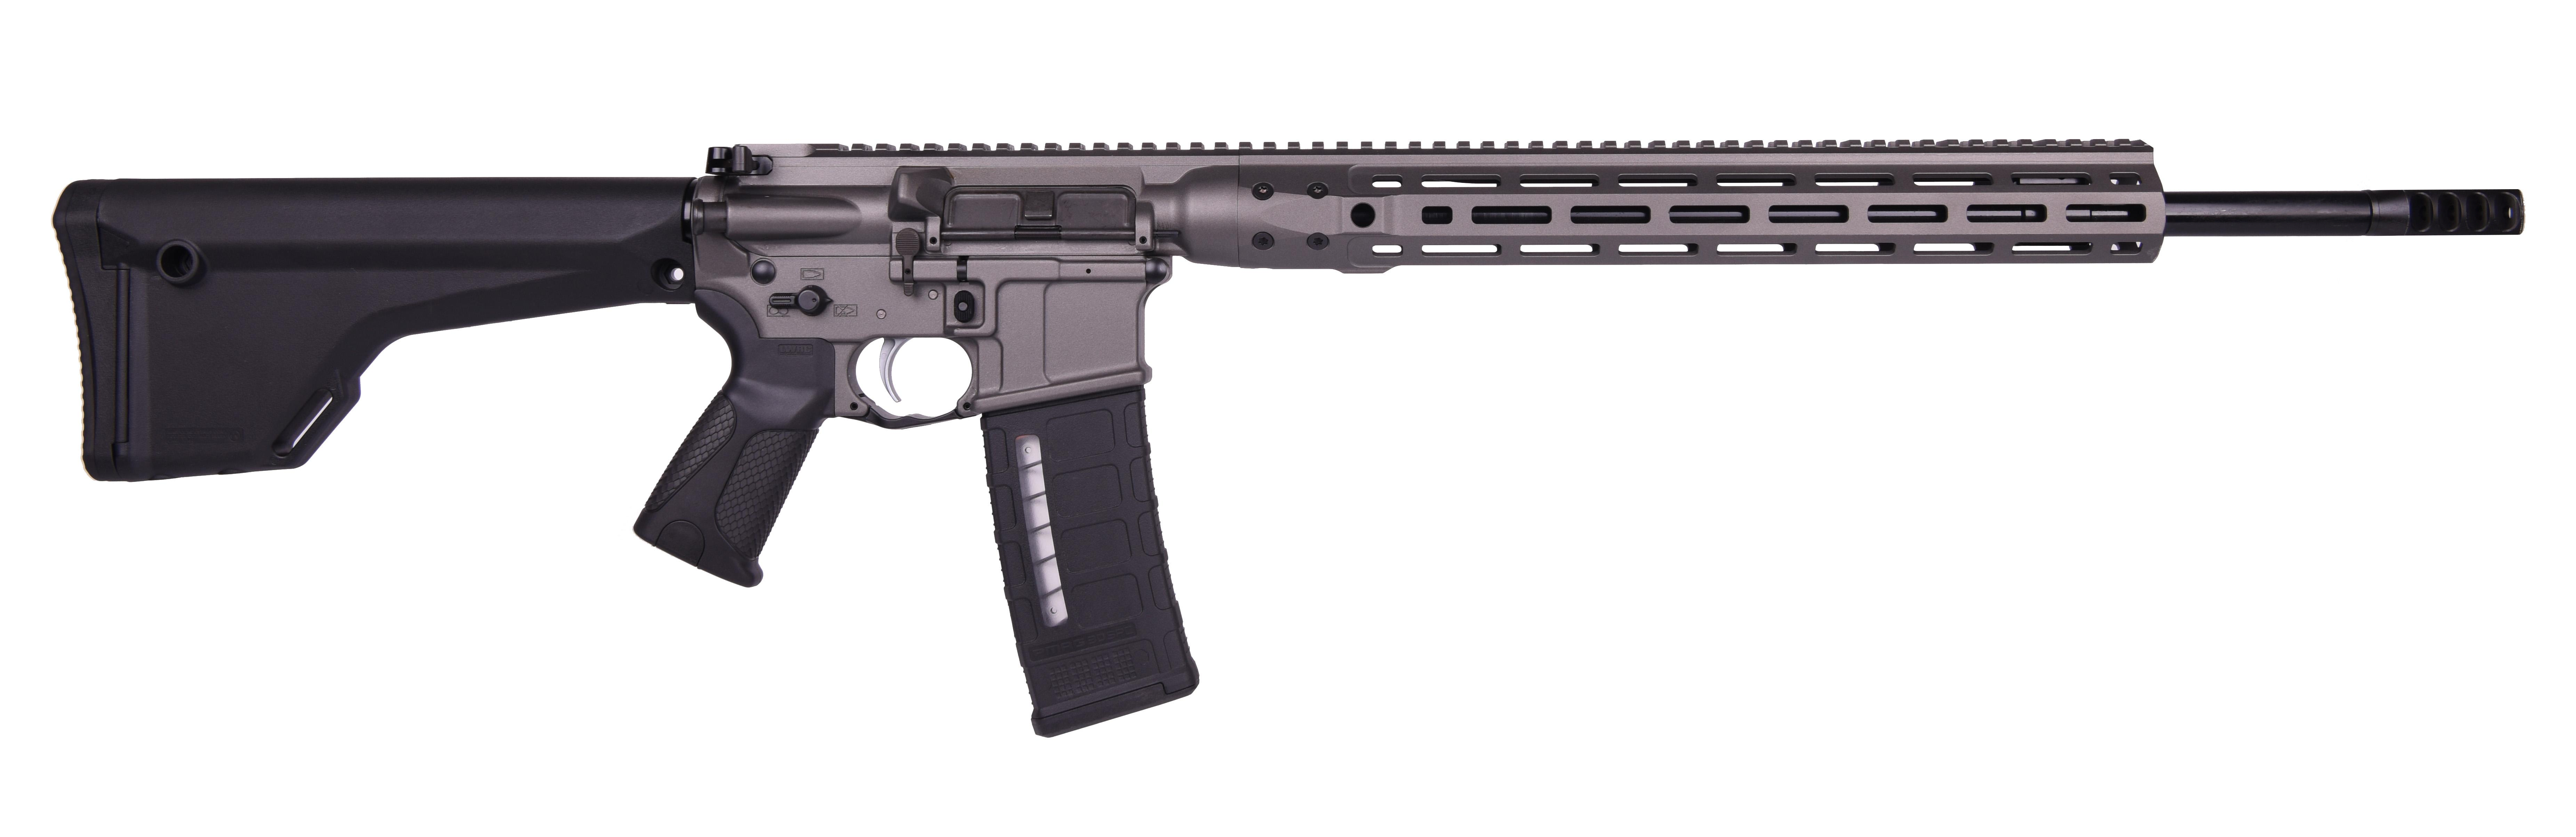 DI VALKYRIE 224VAL 20 GRY - VALKDIRTG20|DIRECT IMPINGEMENT